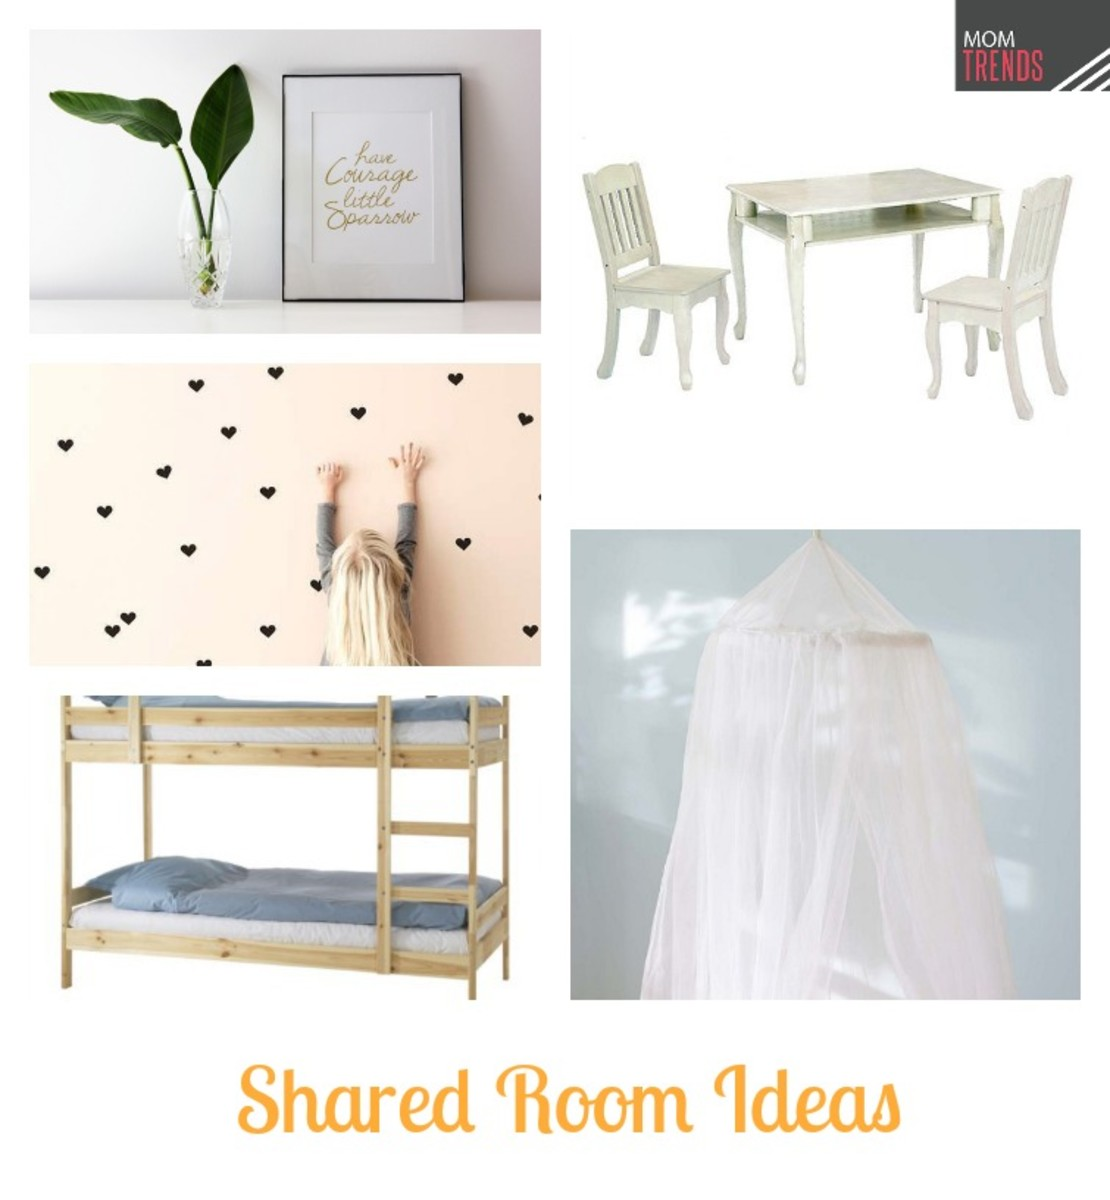 Shared Room Ideas for Kids